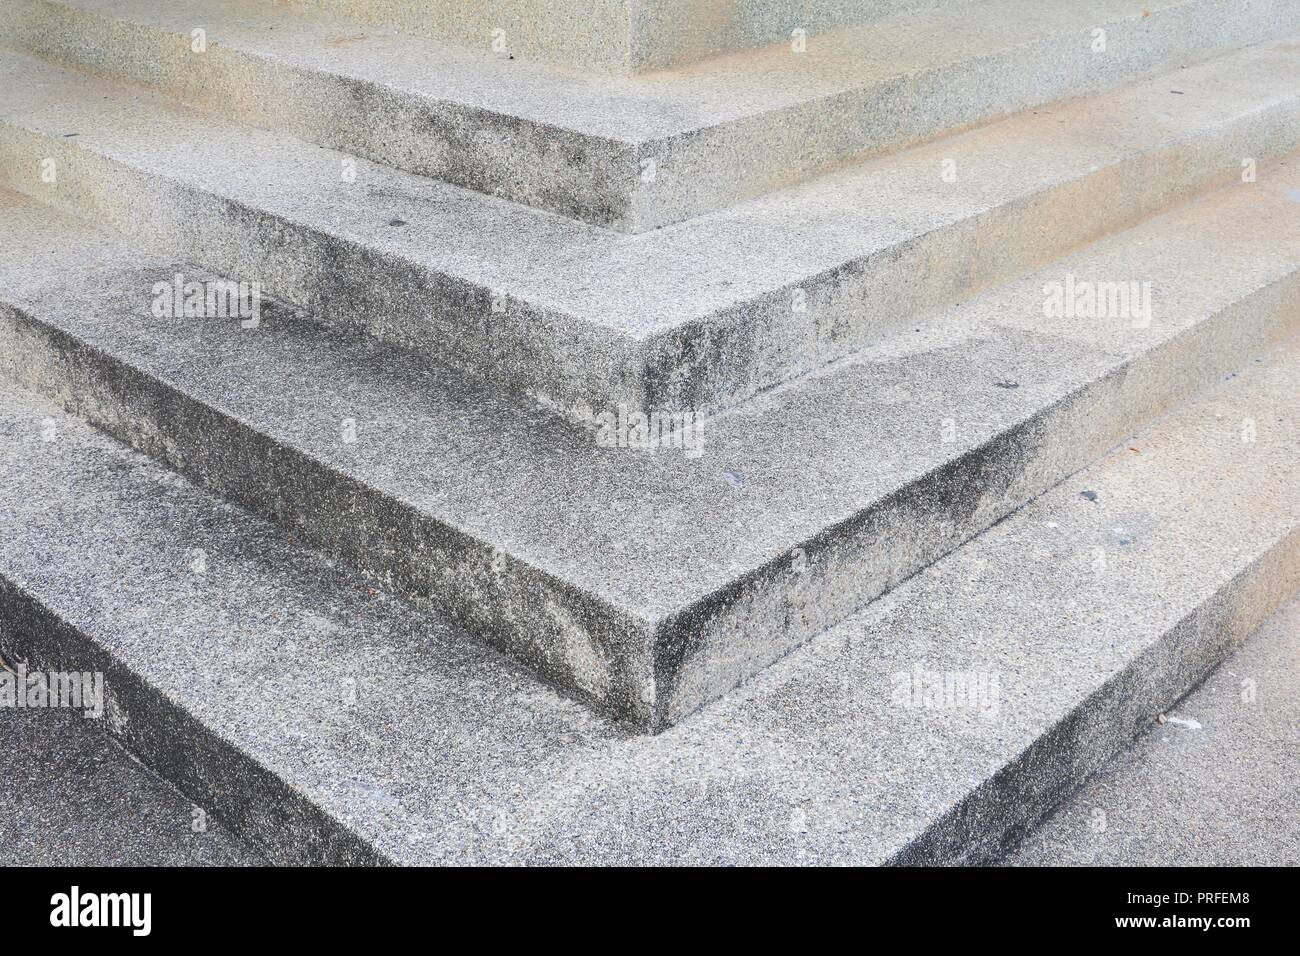 Stairs Old Stone Terrazzo,marble Floor Outdoors Building